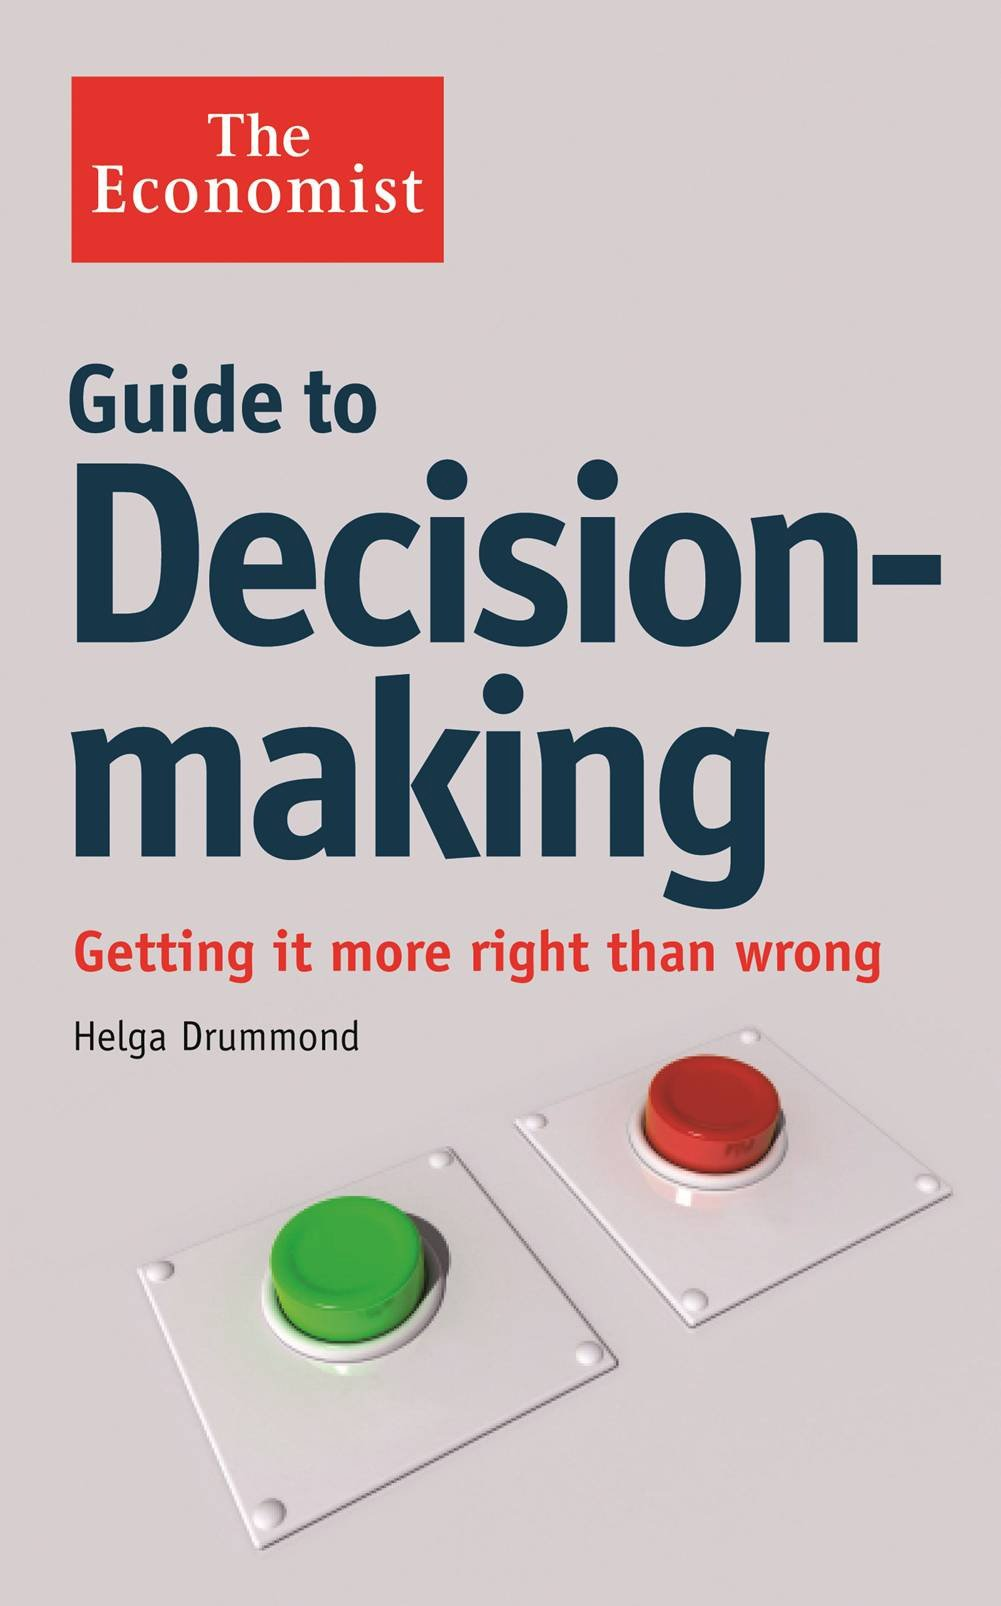 The Economist Guide to Decision-Making: Getting it more right than wrong  Paperback – 26 Jul 2012